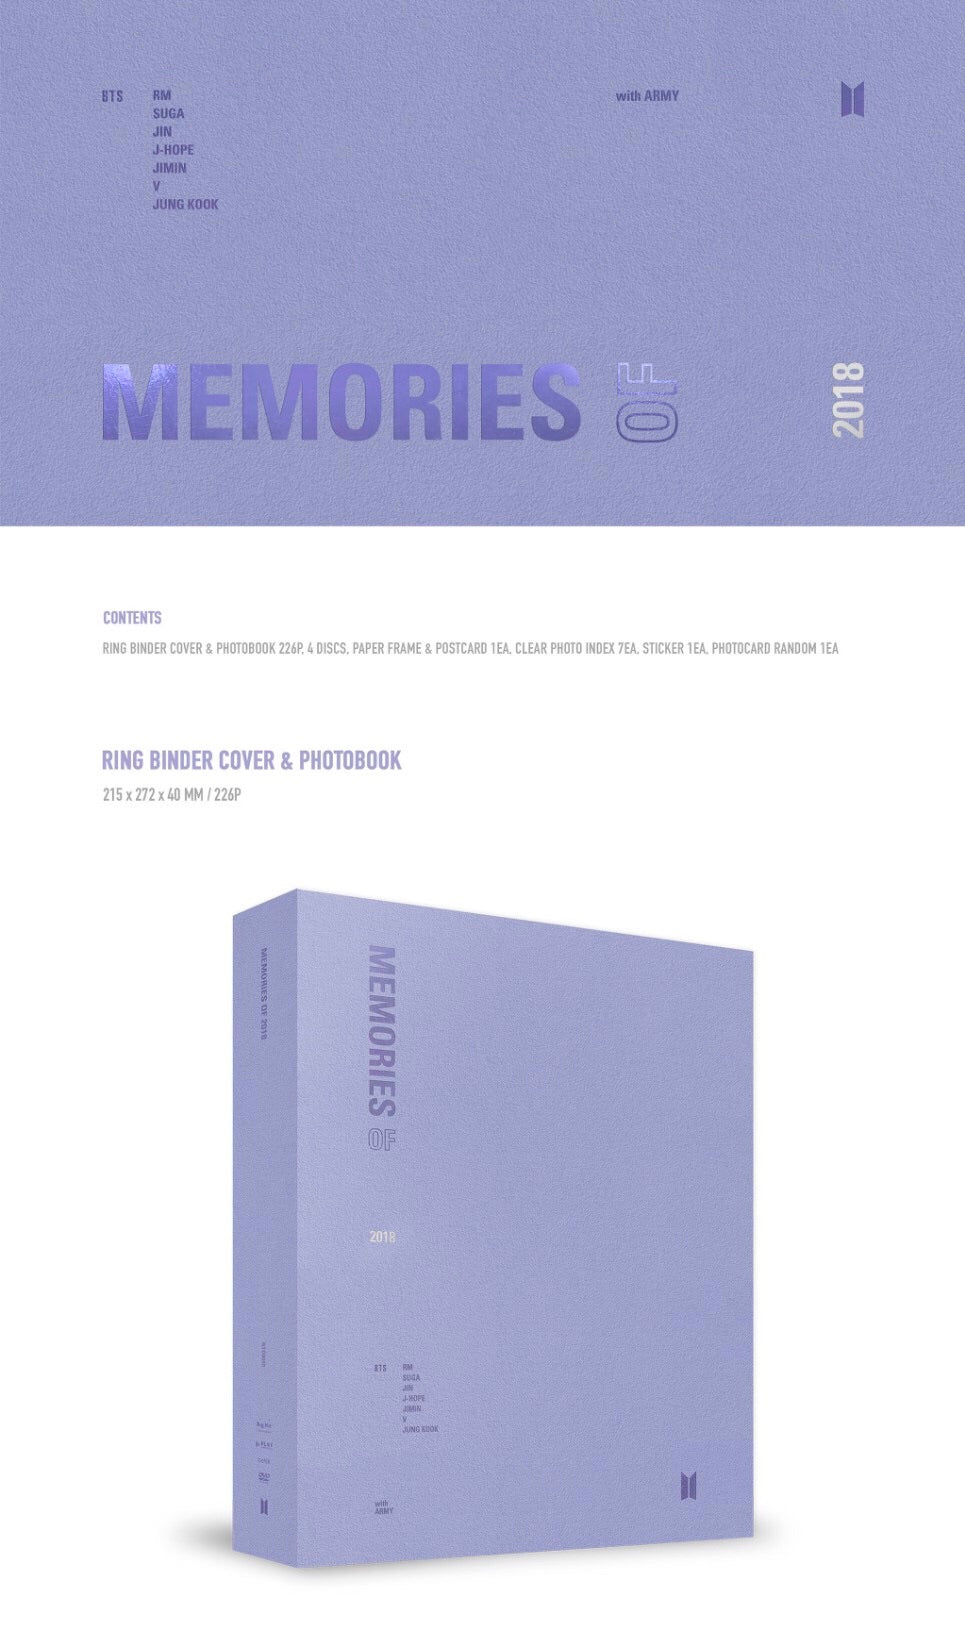 BTS - Memories of 2018 - 4 DVDs  - Pre-Order